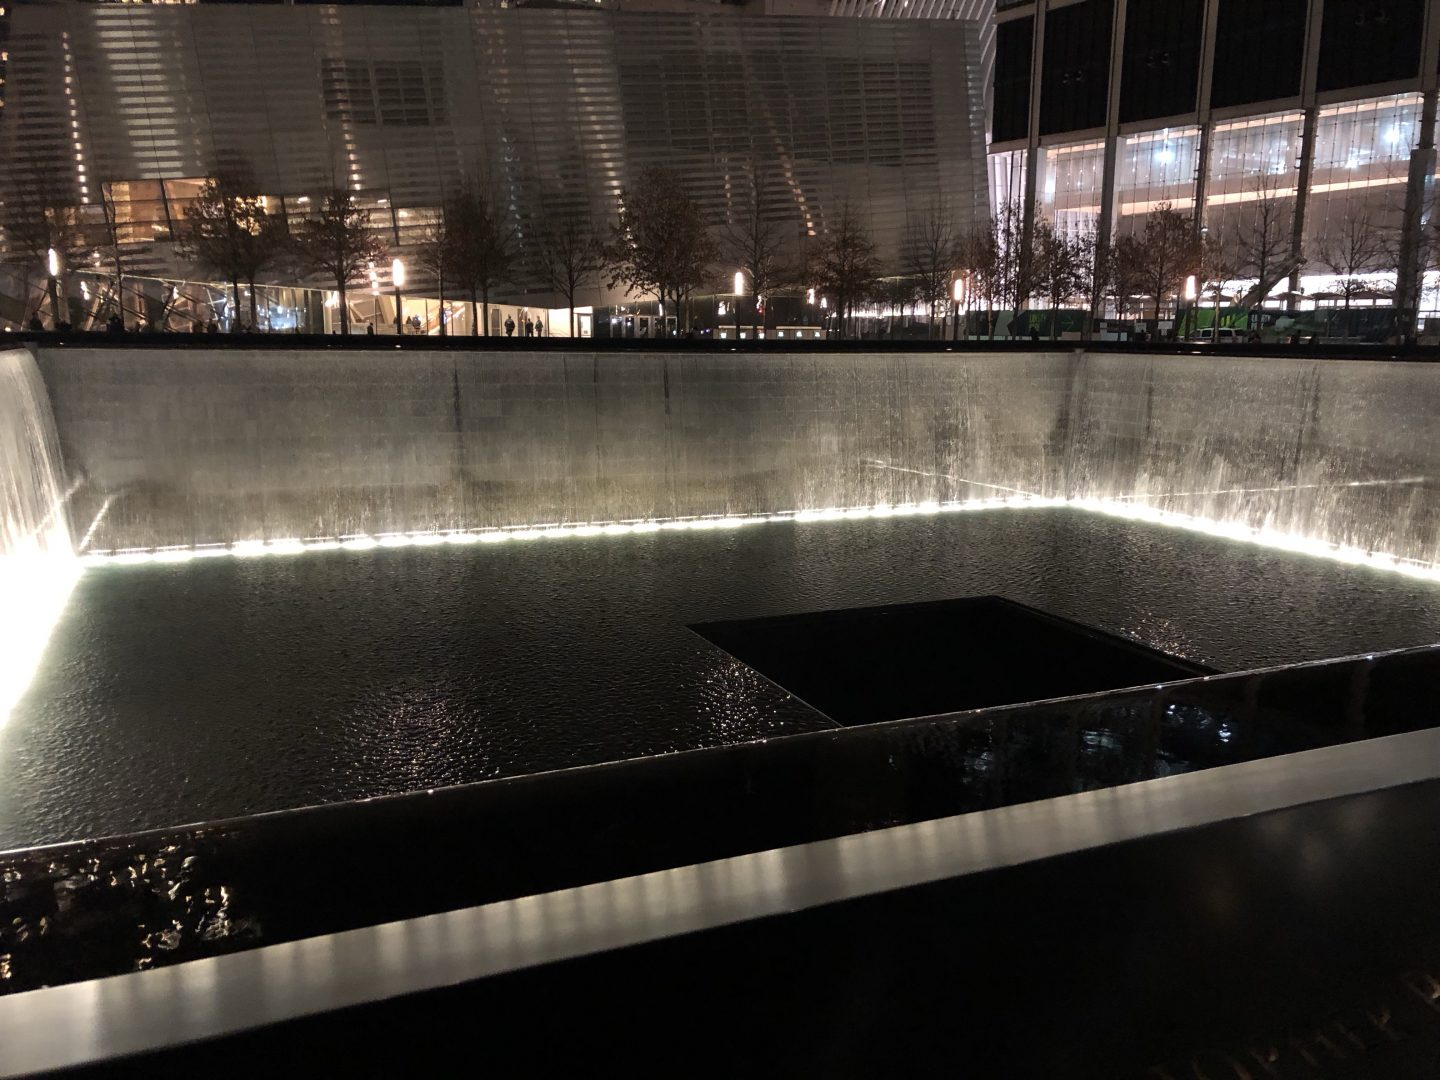 A photo of one of the ground 0 memorial pools